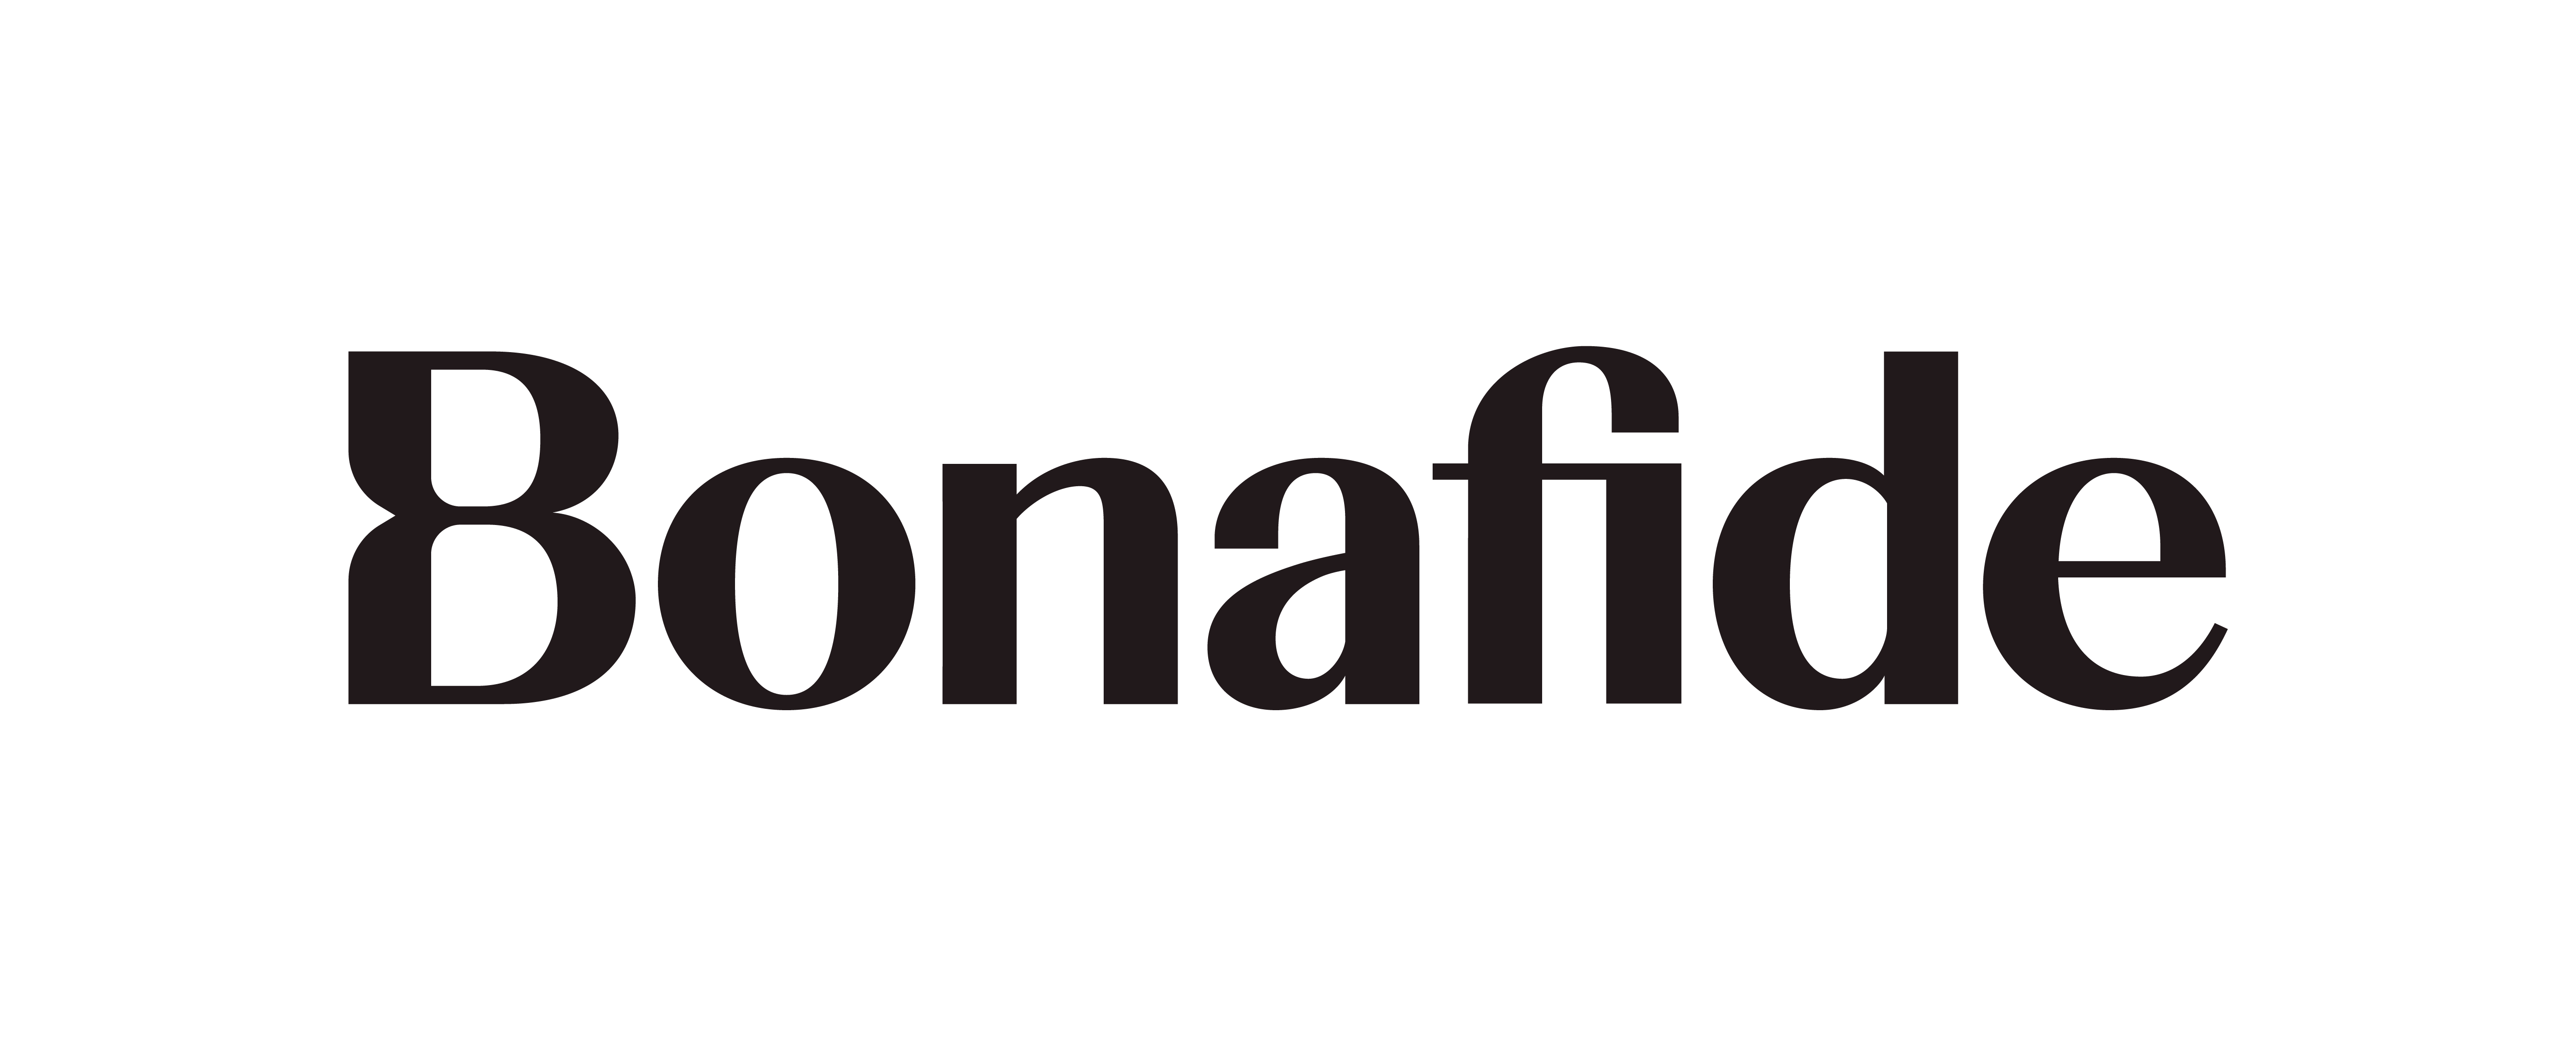 Bonafide Health® Surpassed Their iCPA Goals by 27% with PDM® Retargeting